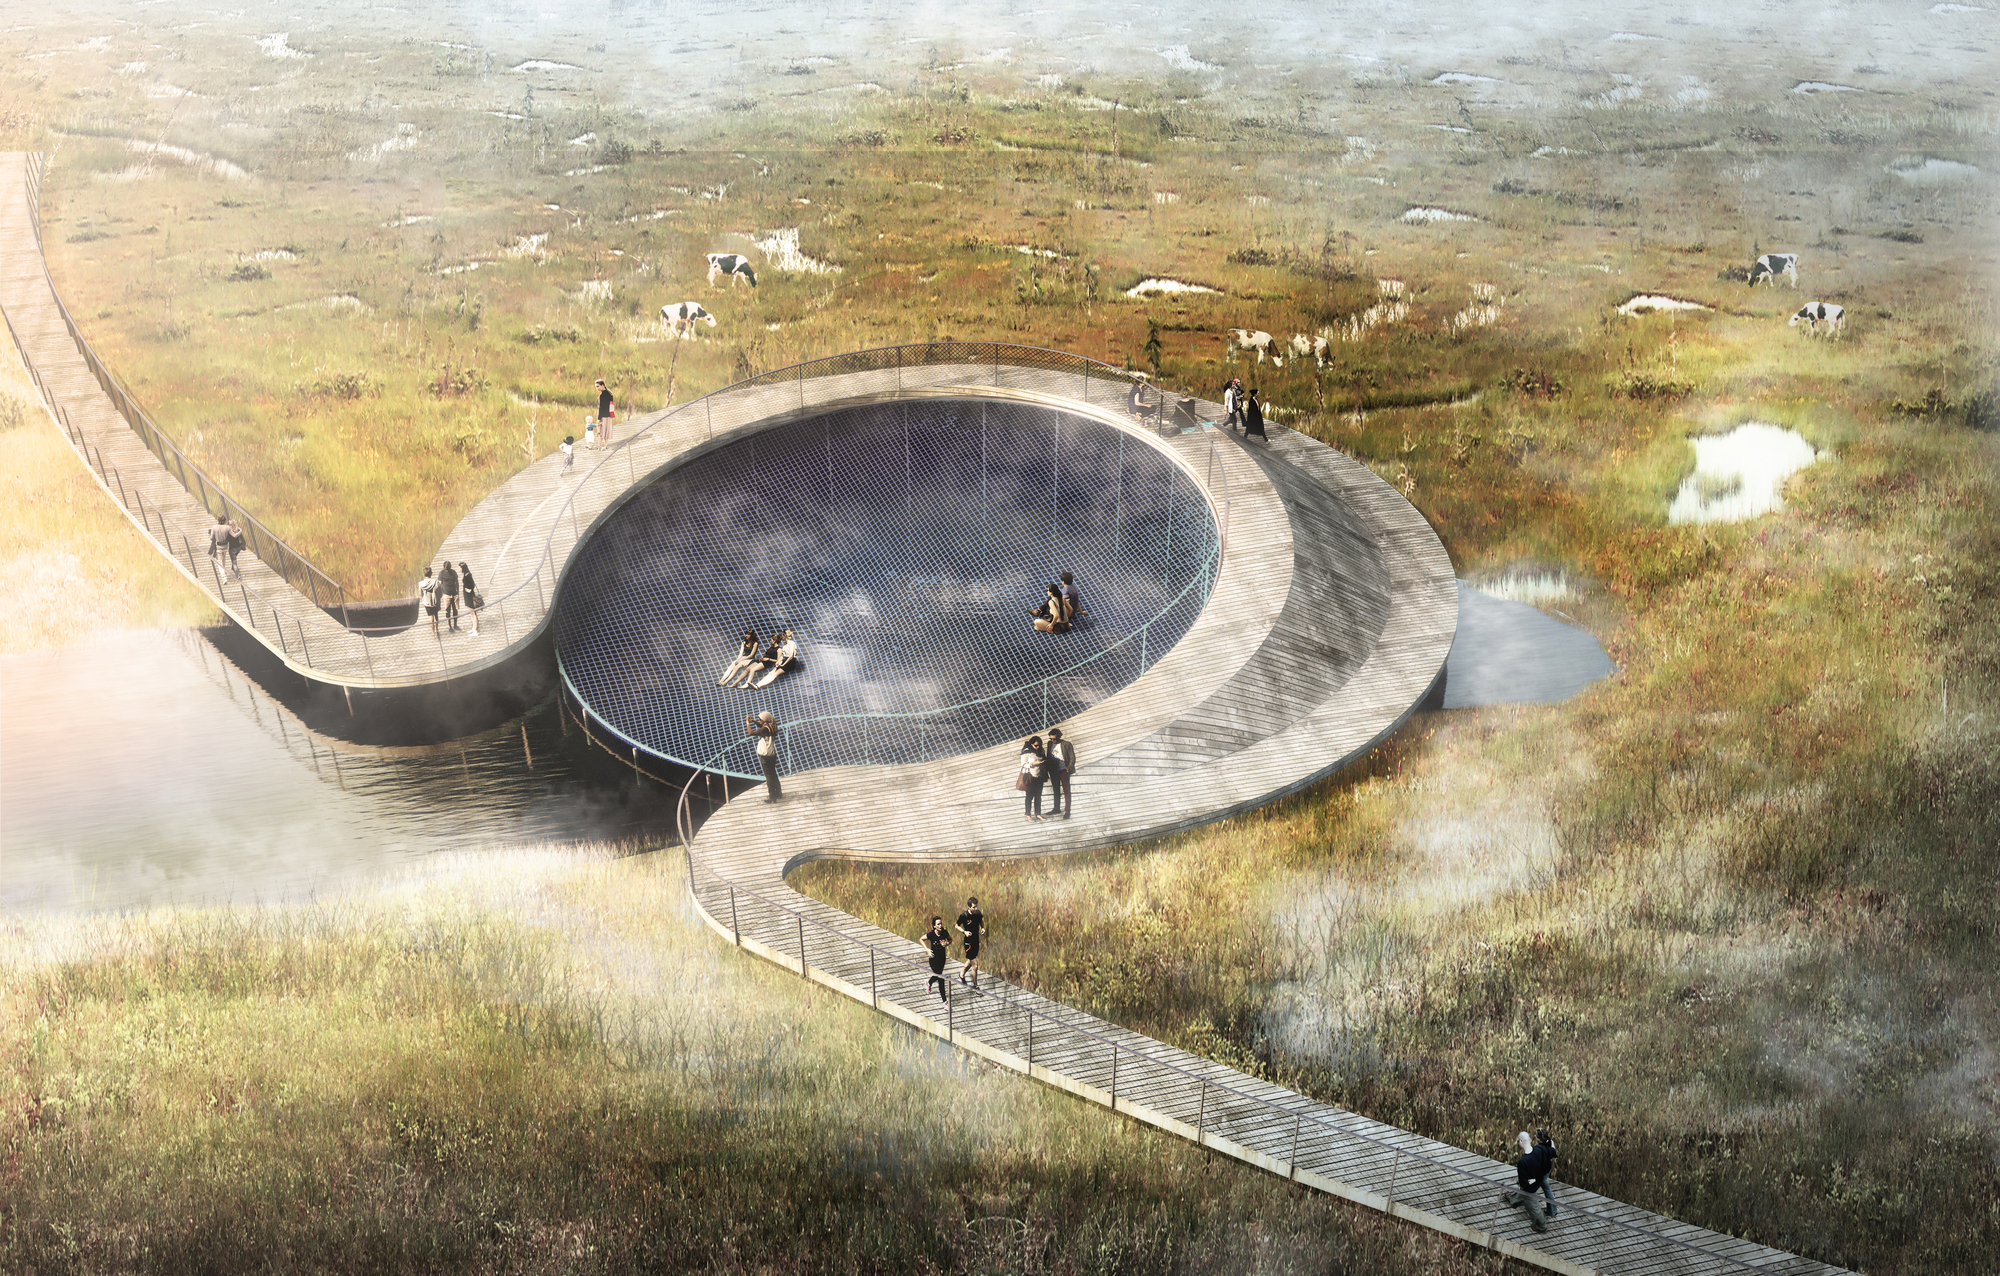 CF Møller's Nature Park is Designed to Flood to Save the Nearby Town